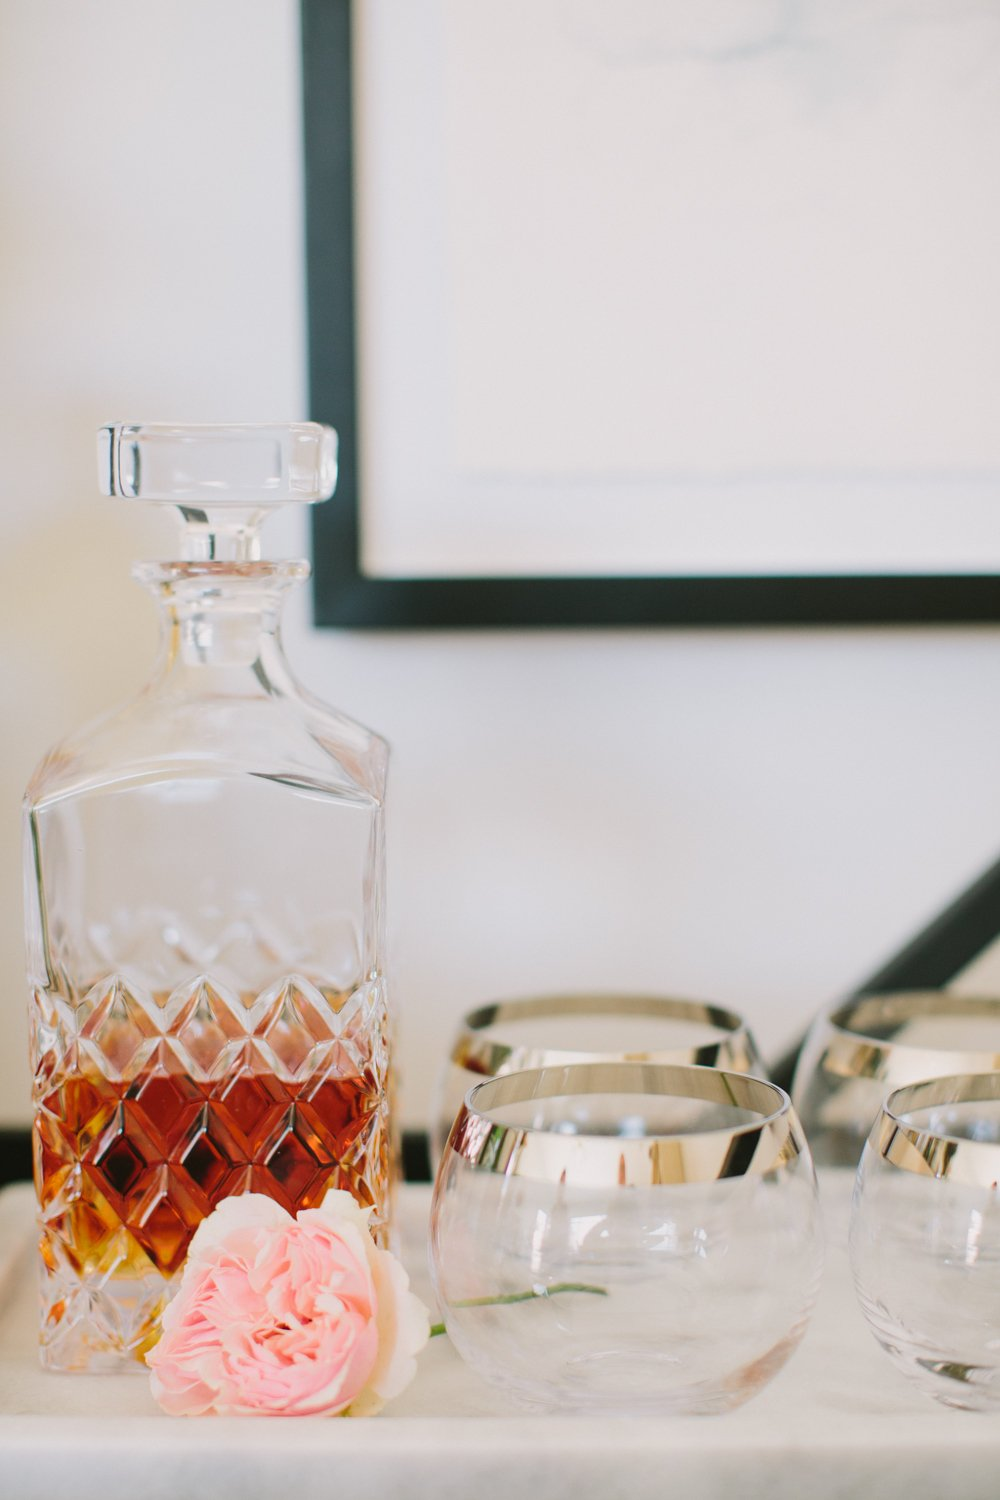 Marble serving tray on barcart with cocktail glasses and a clear glass liquor decanter